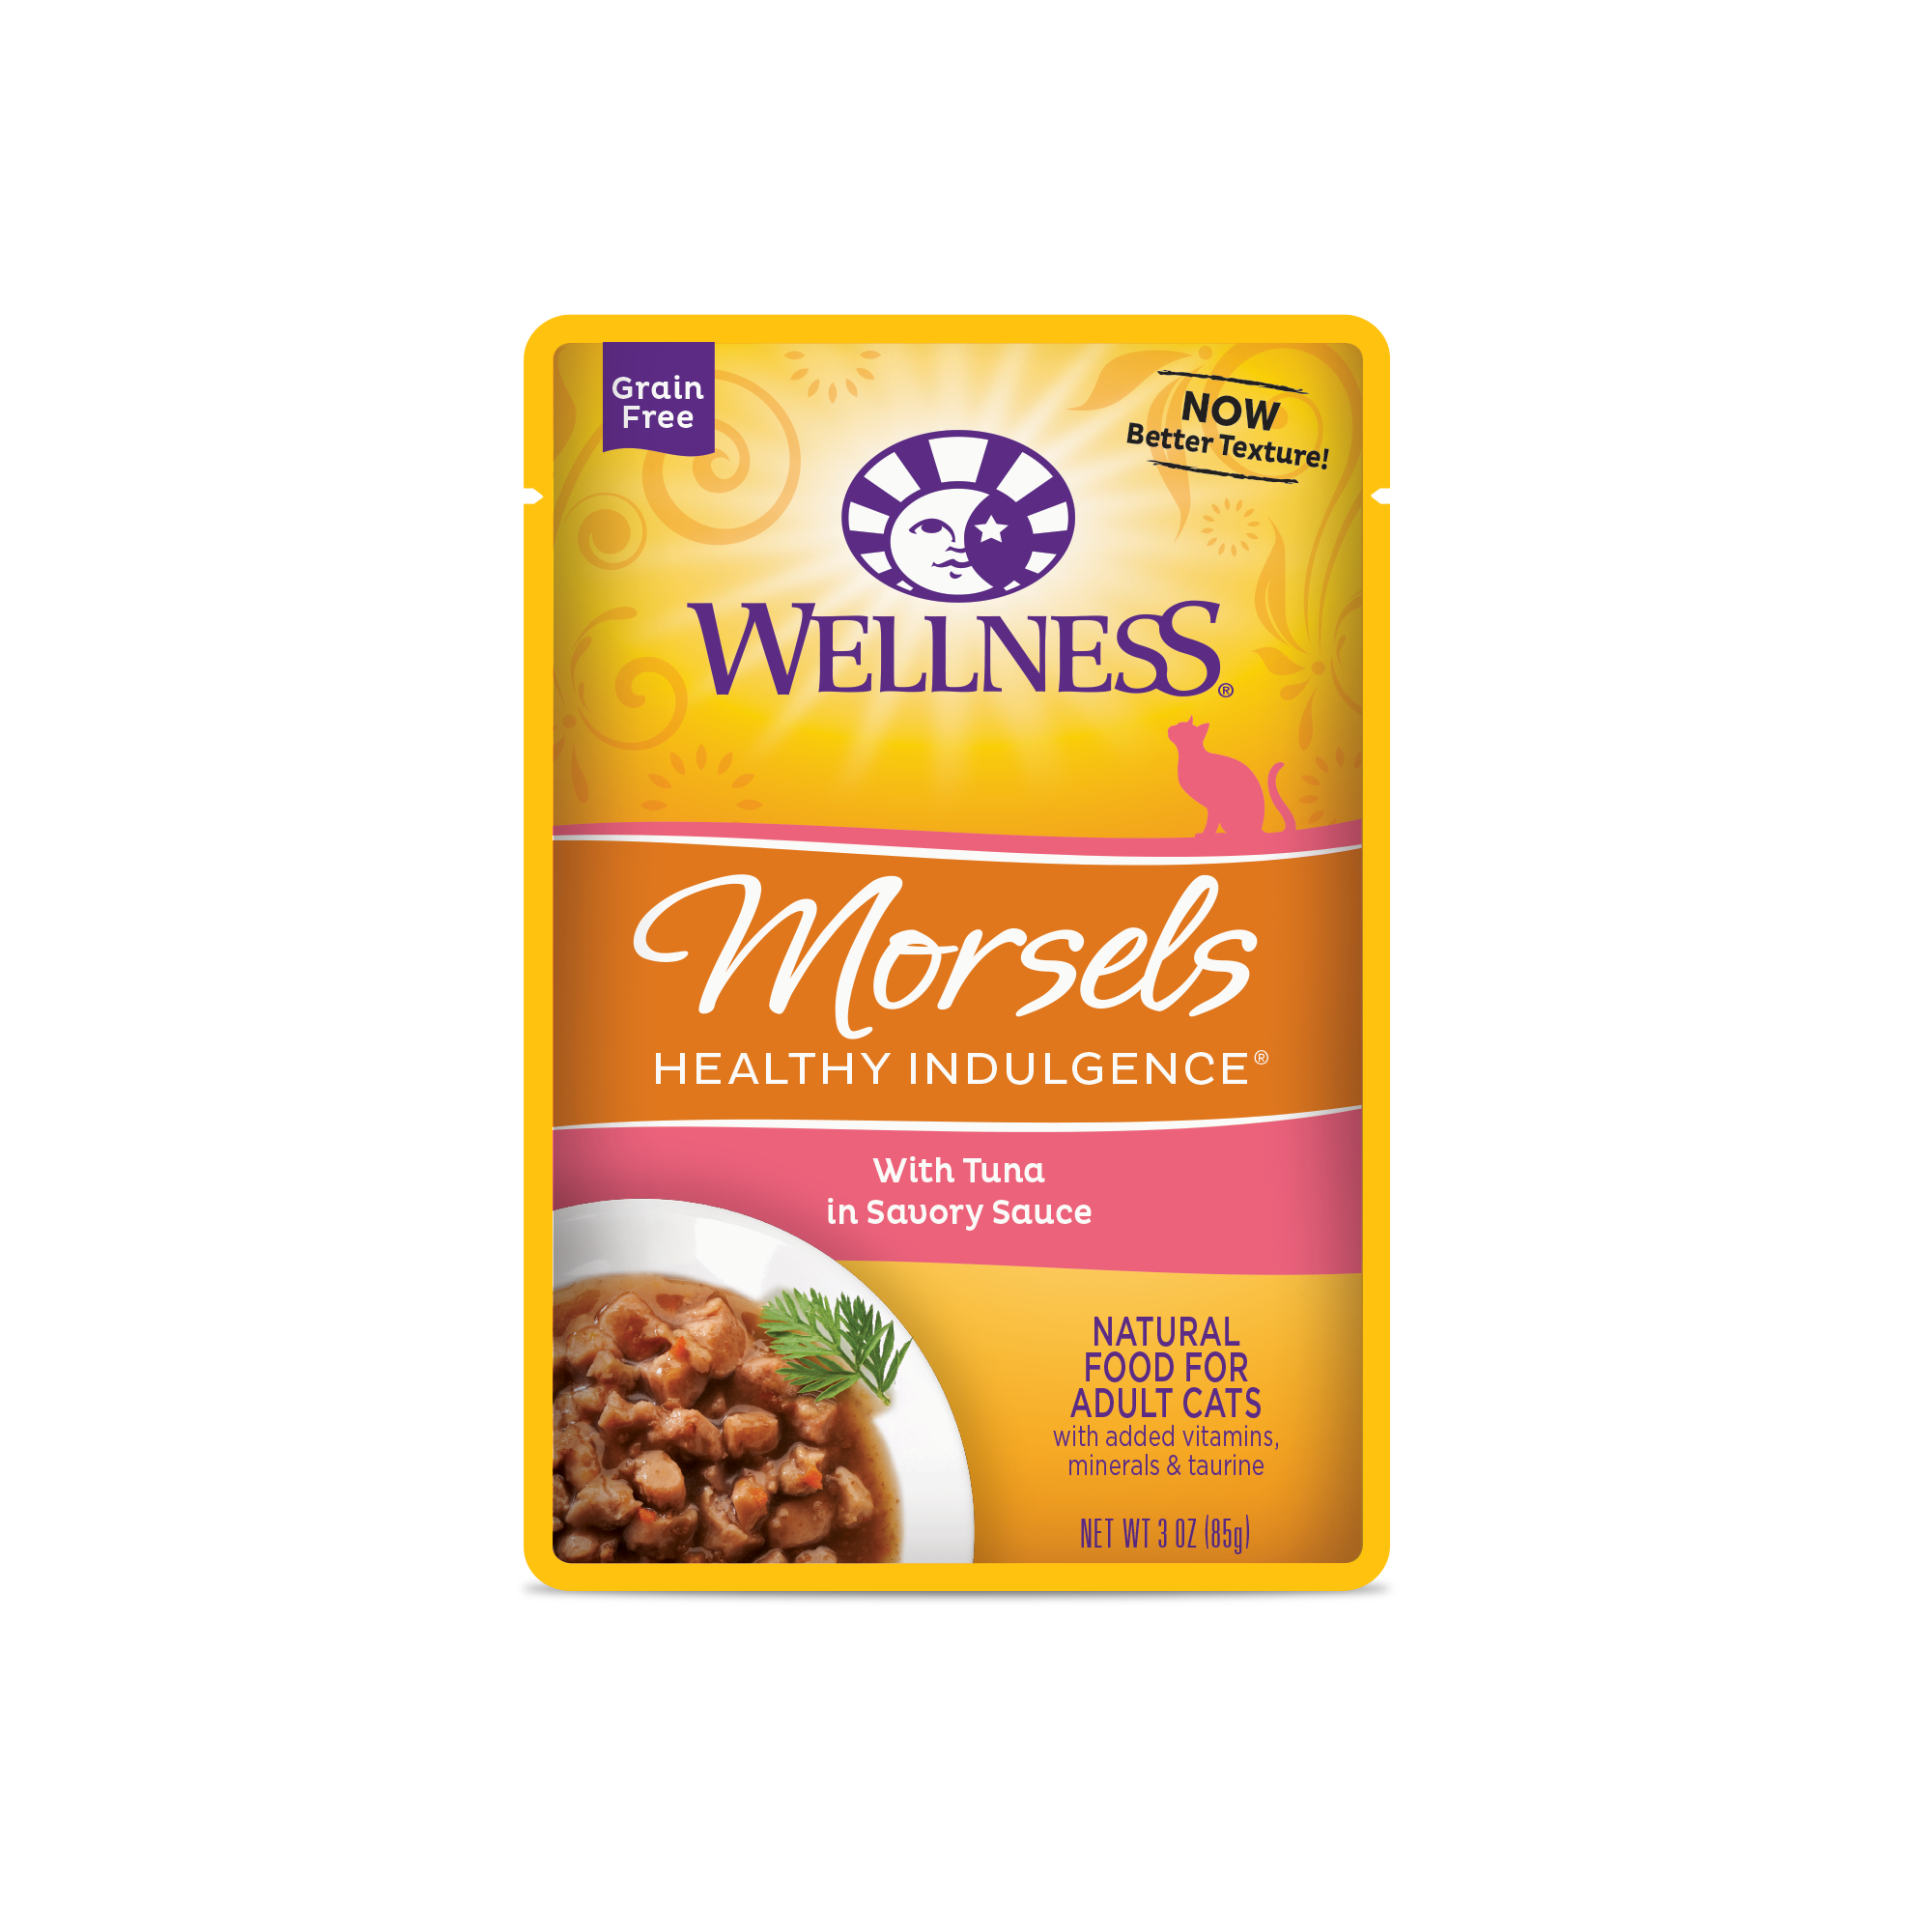 Healthy Indulgence 174 Morsels Tuna Wellness Pet Food